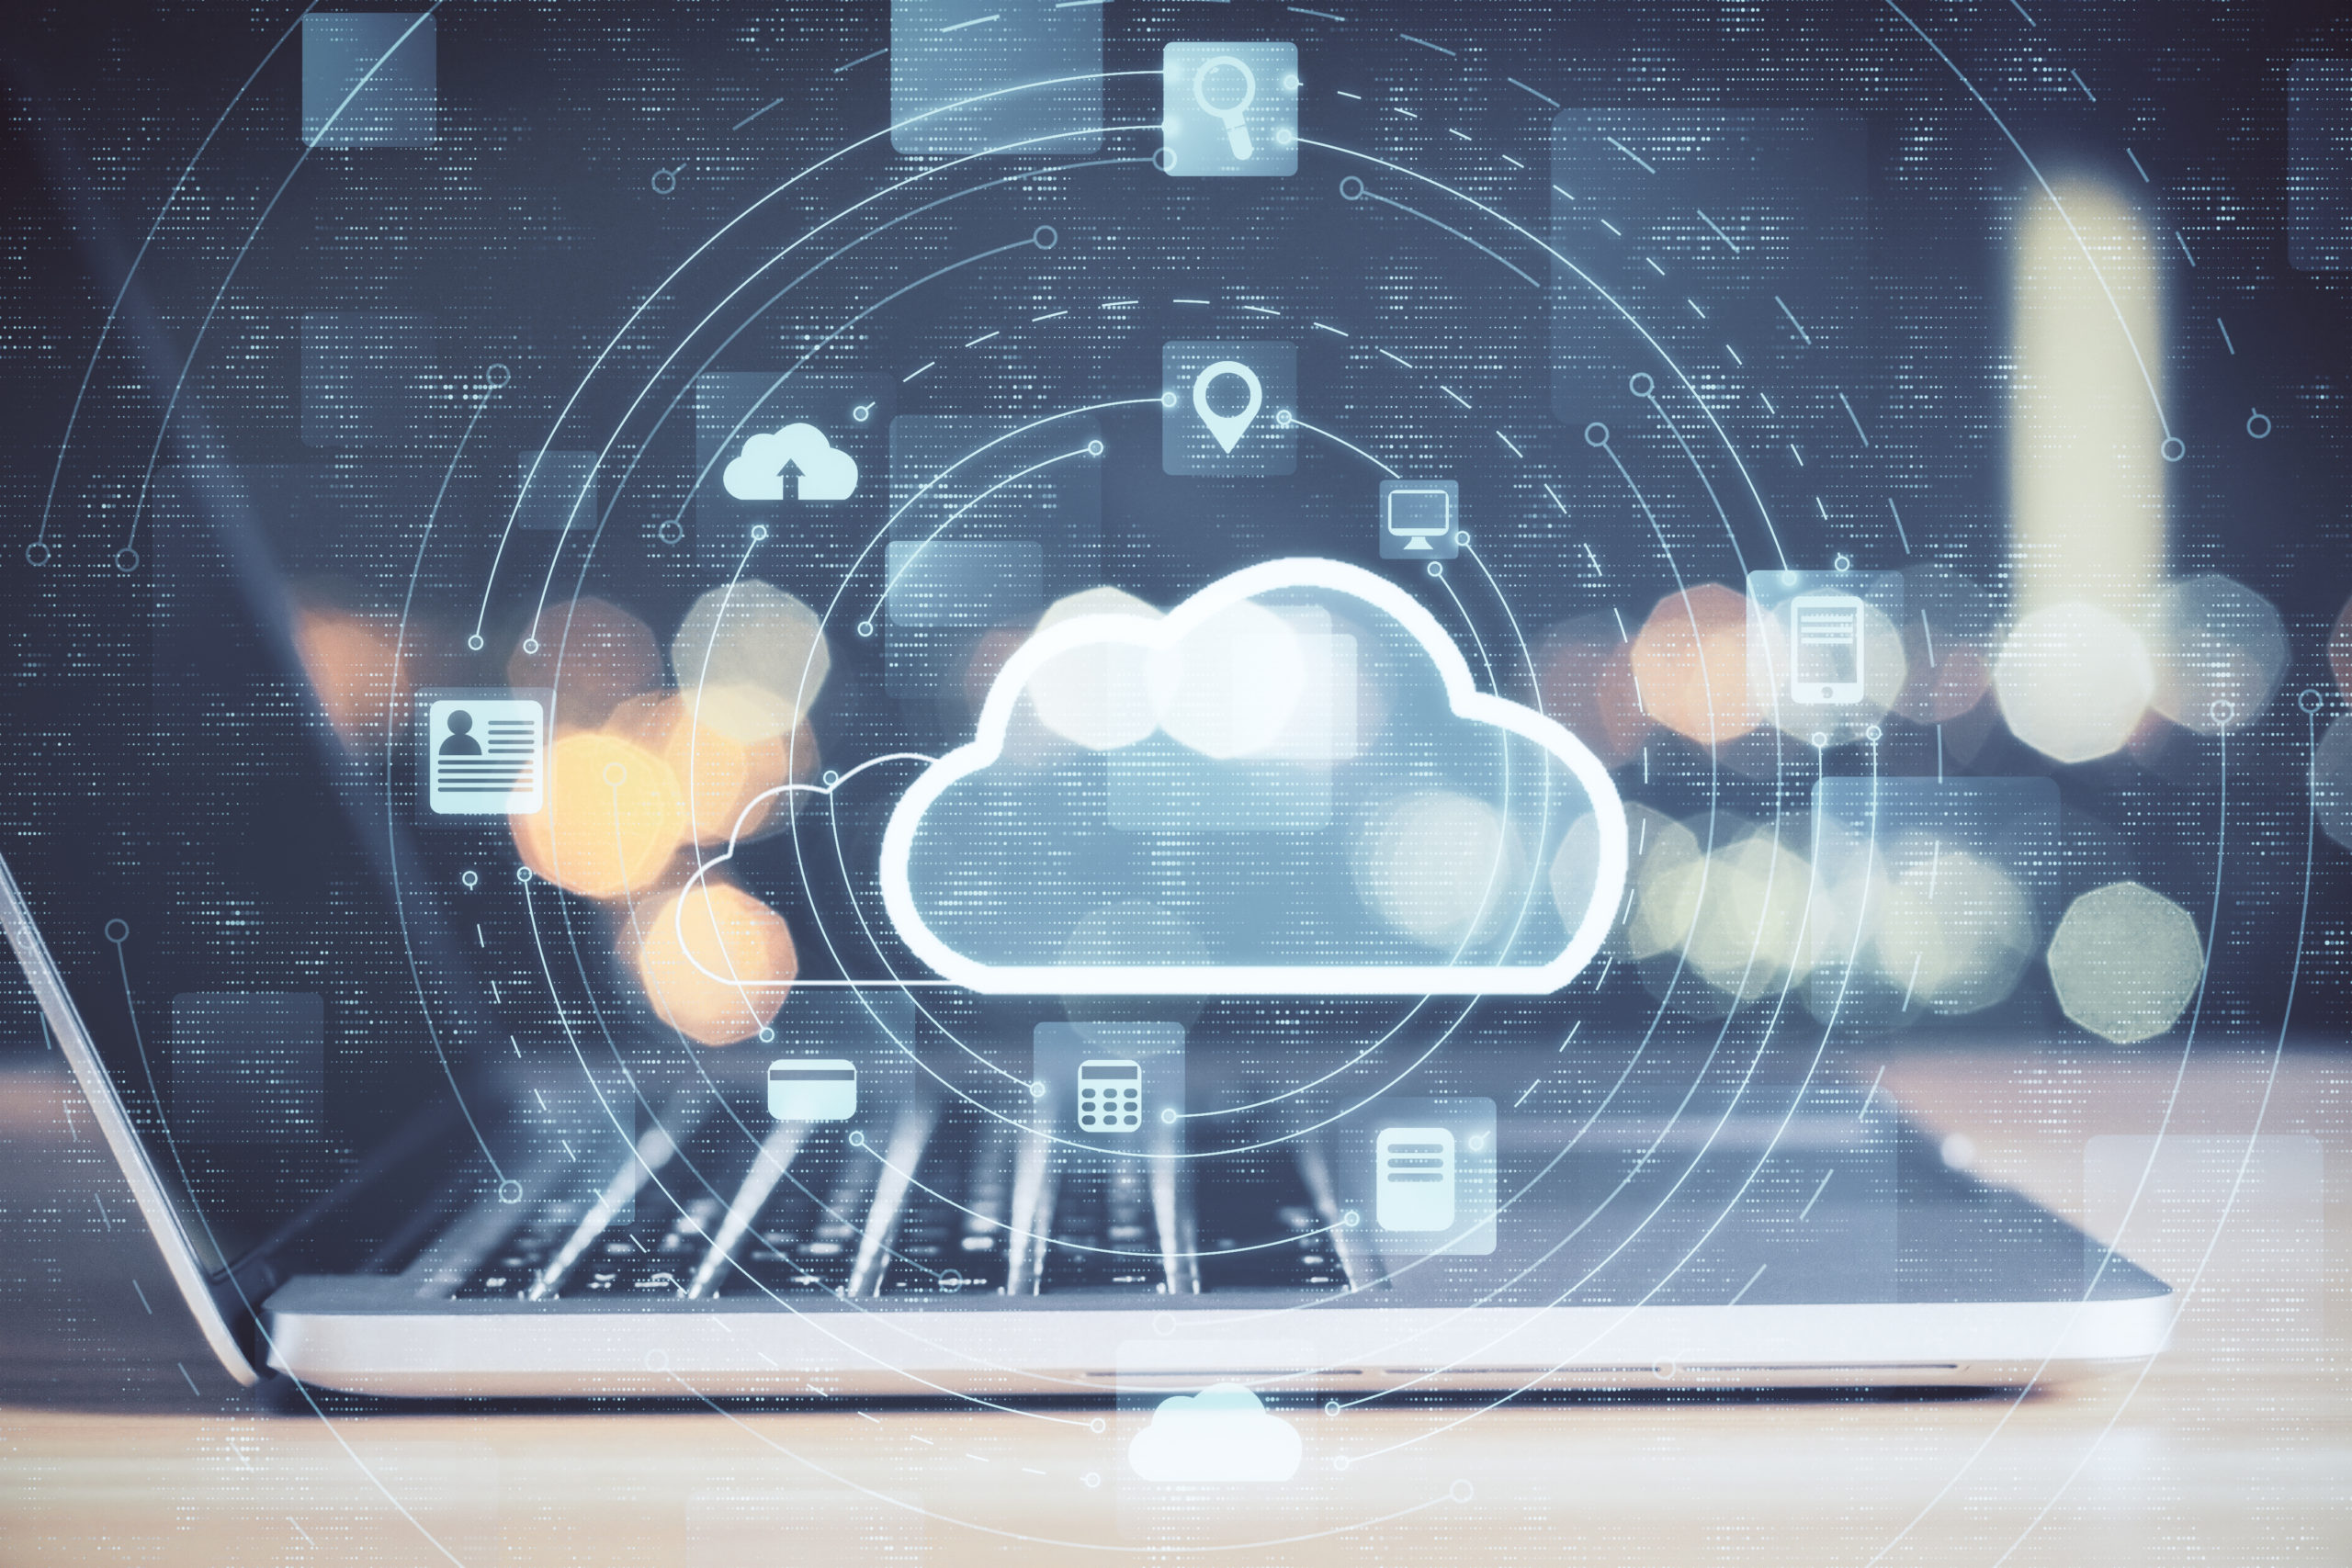 Cloud onboarding for a NY-based banking firm